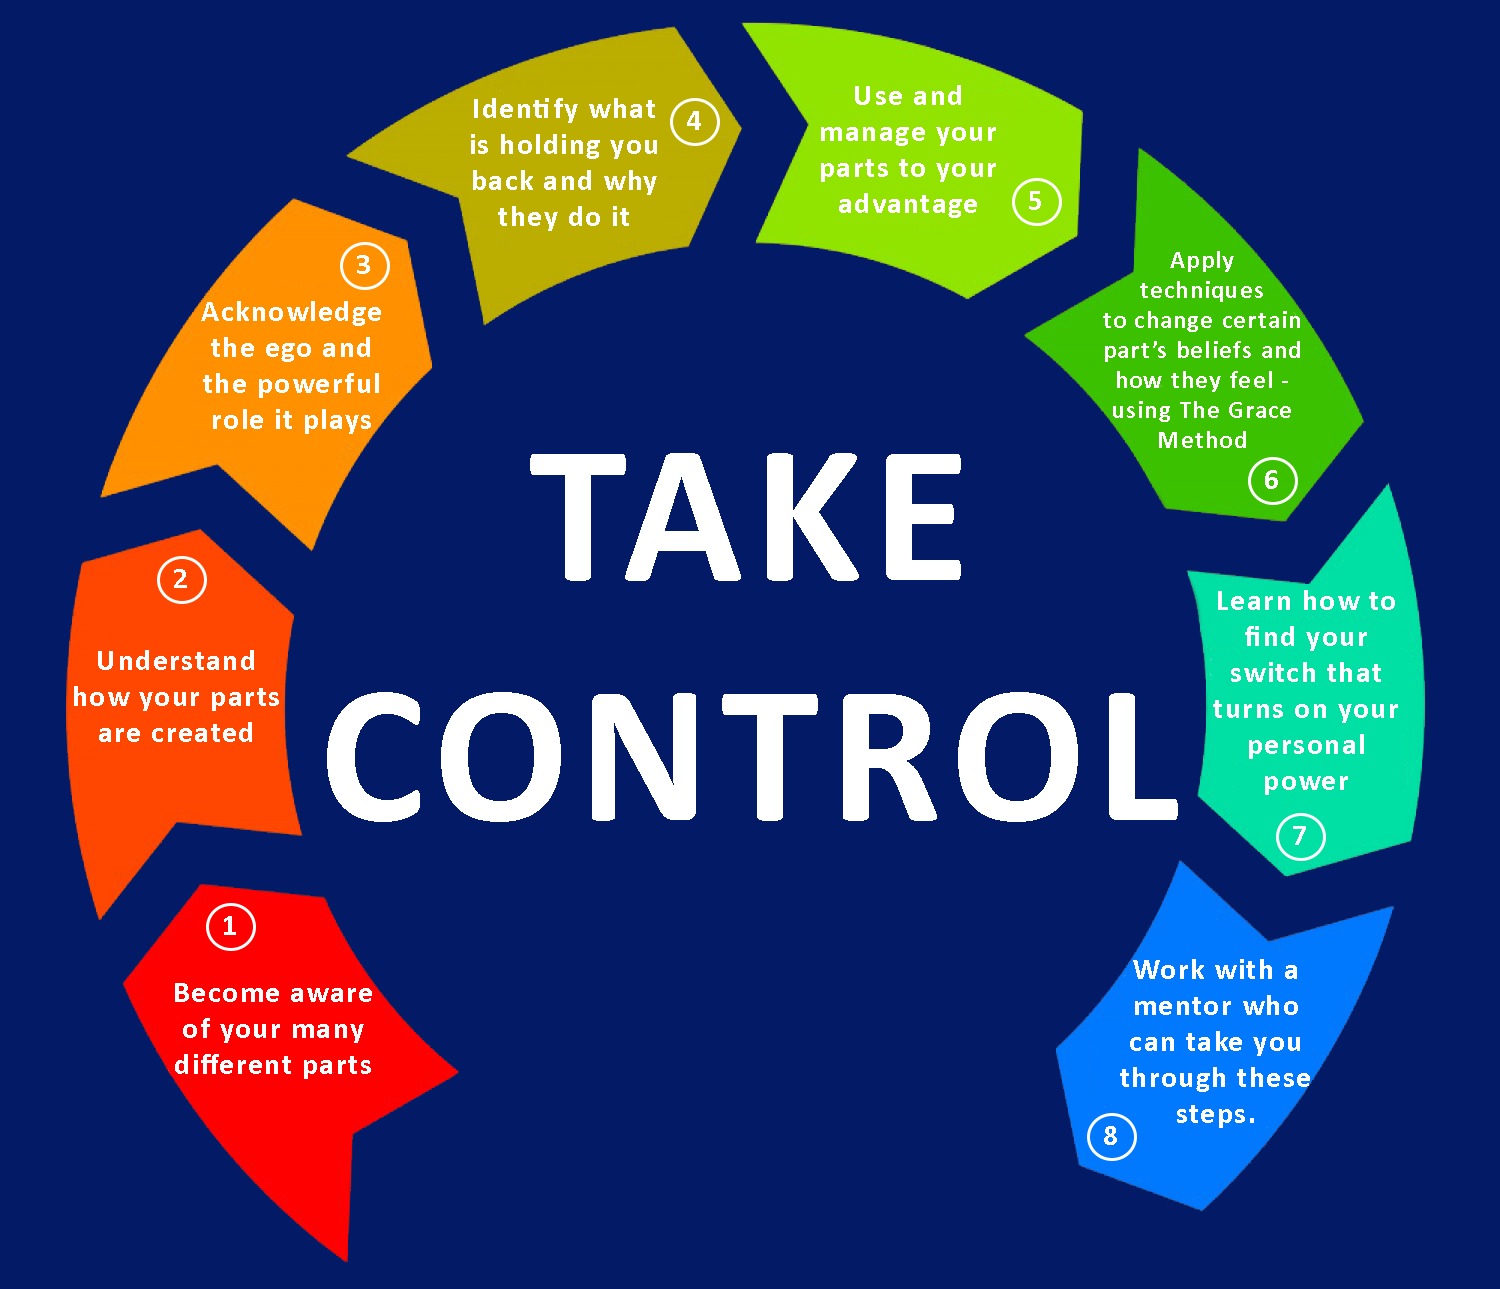 8 Steps to Taking Control